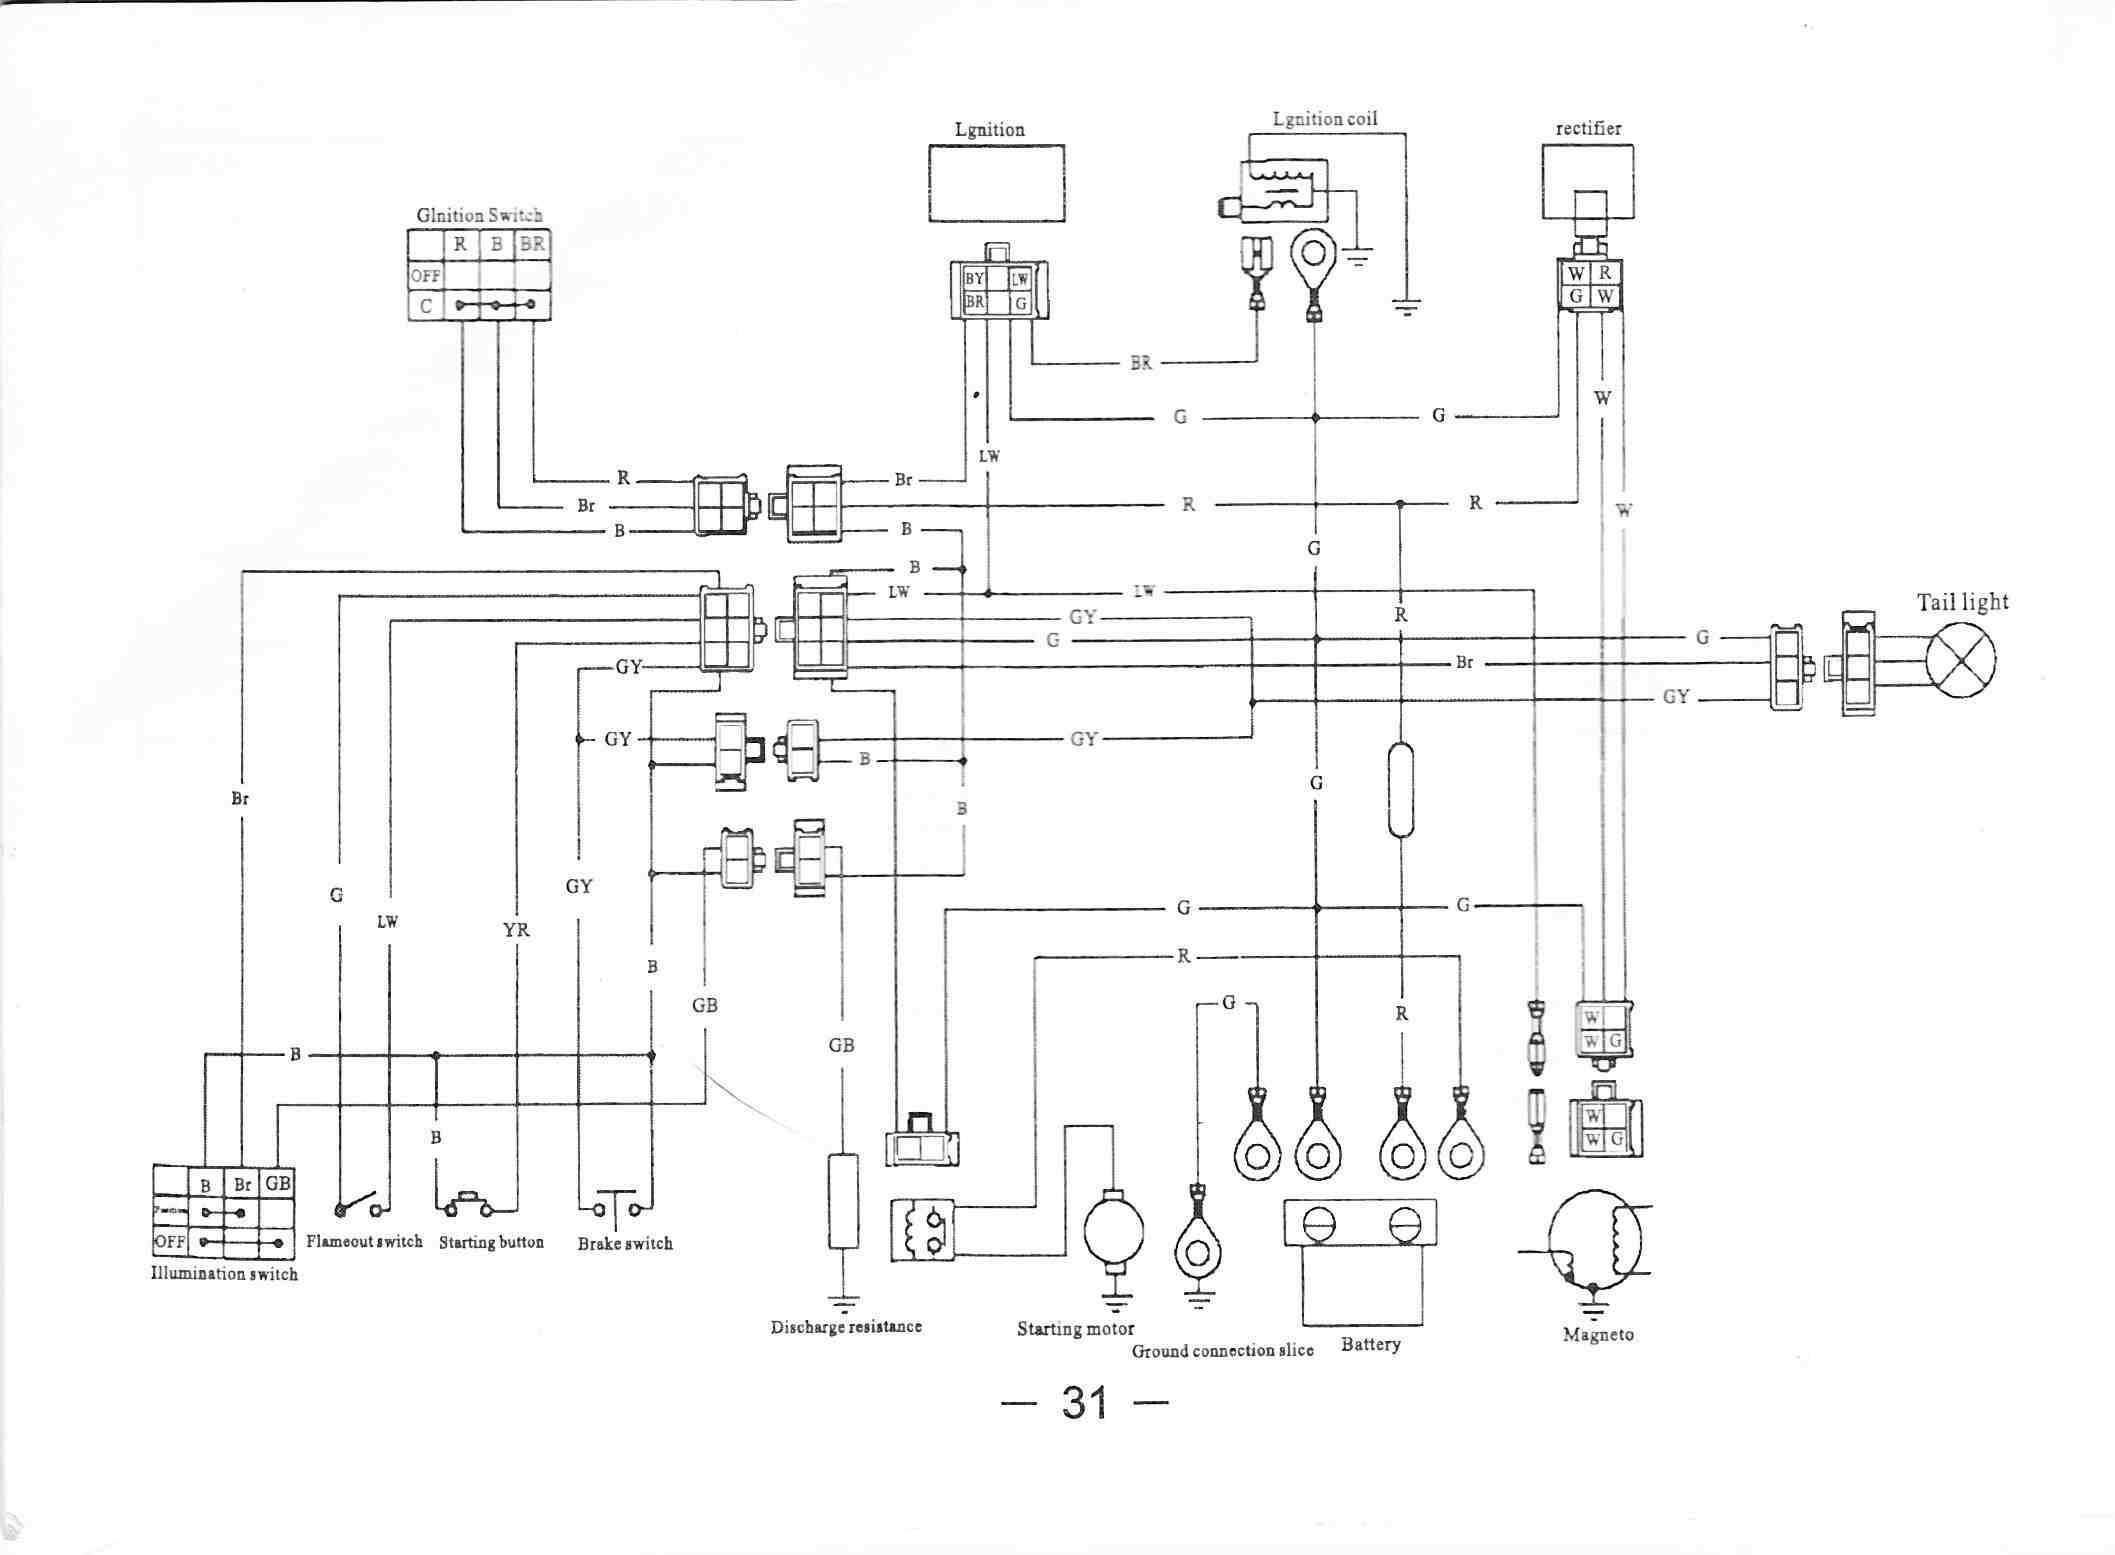 yamaha timberwolf wiring cdi owner manual \u0026 wiring diagram Yamaha Timberwolf